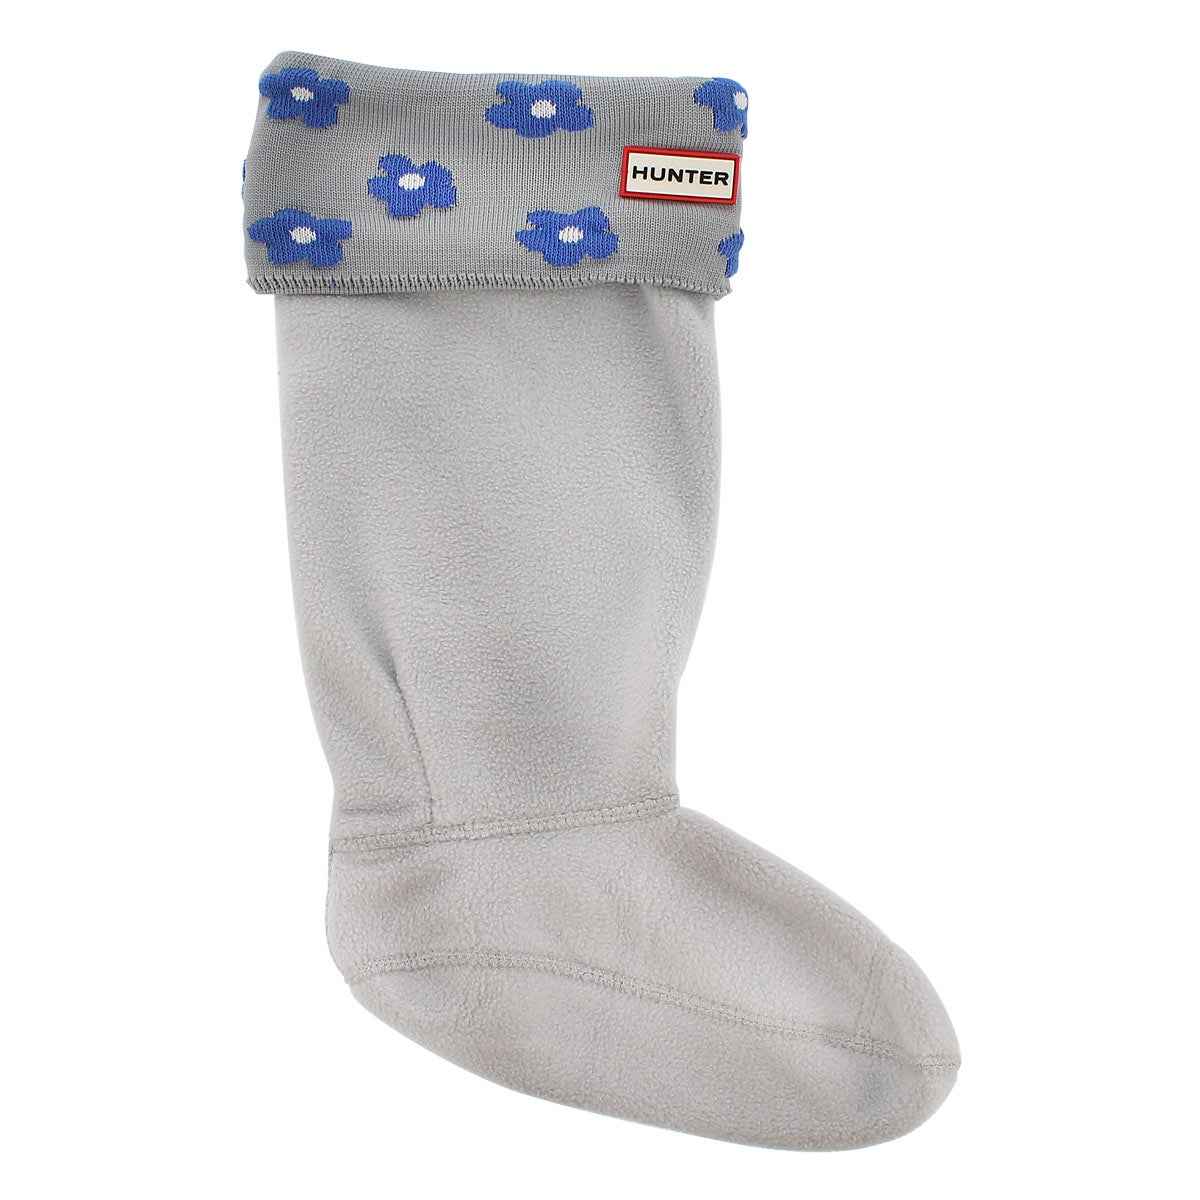 Lds Floral Cuff blue boot sock